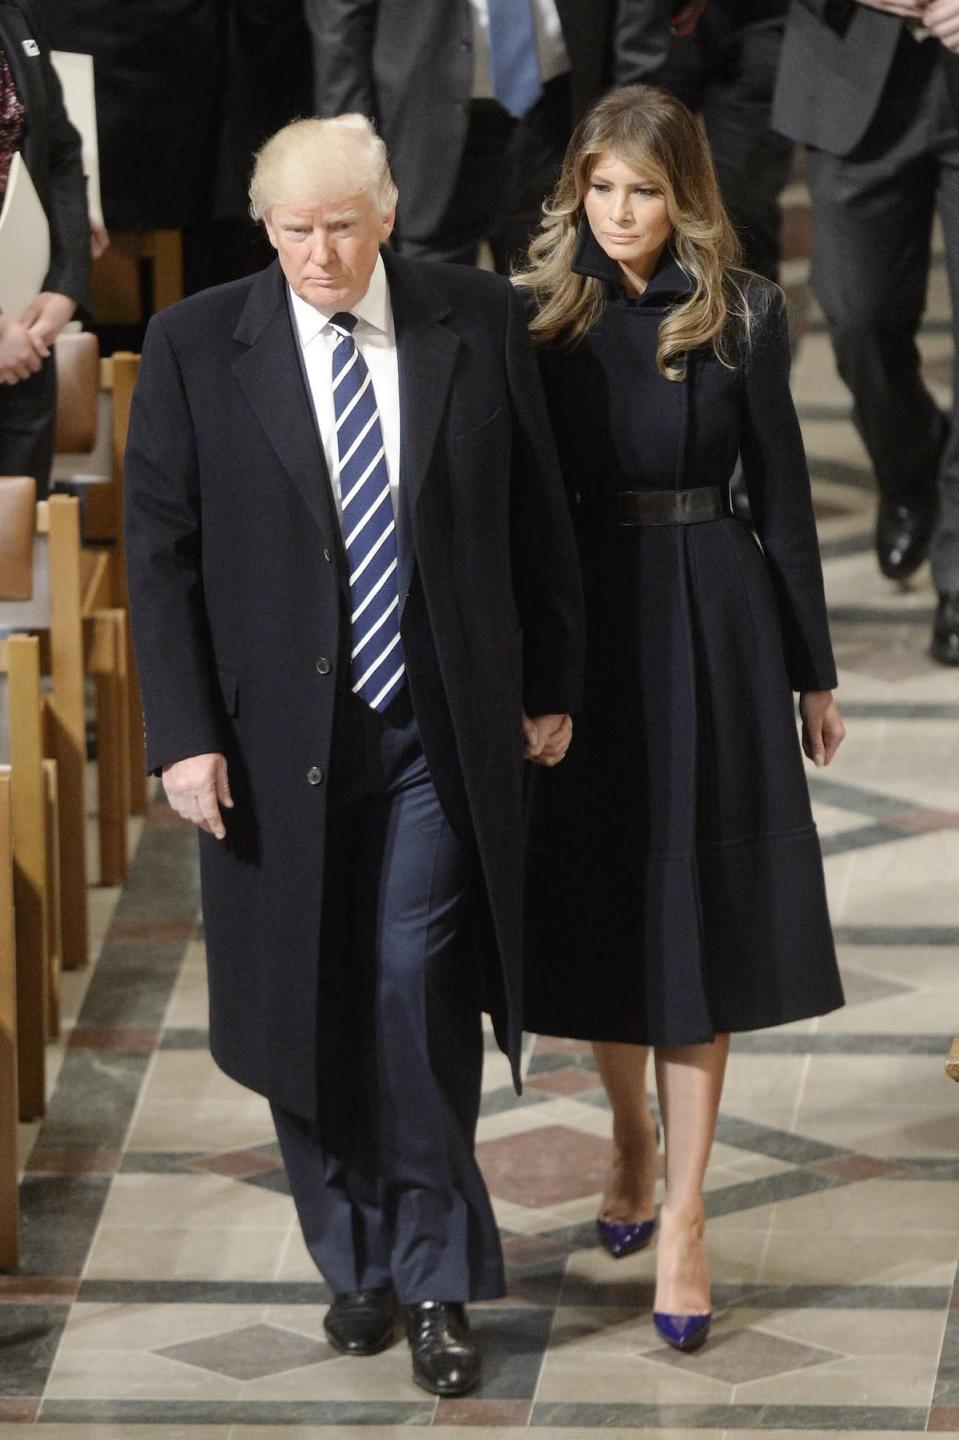 <p>The day after her husband's inauguration, Melania Trump traded her white gown designed by Hervé Pierre for a black wool coat from Alice Roi. (Photo: AKM-GSI) </p>